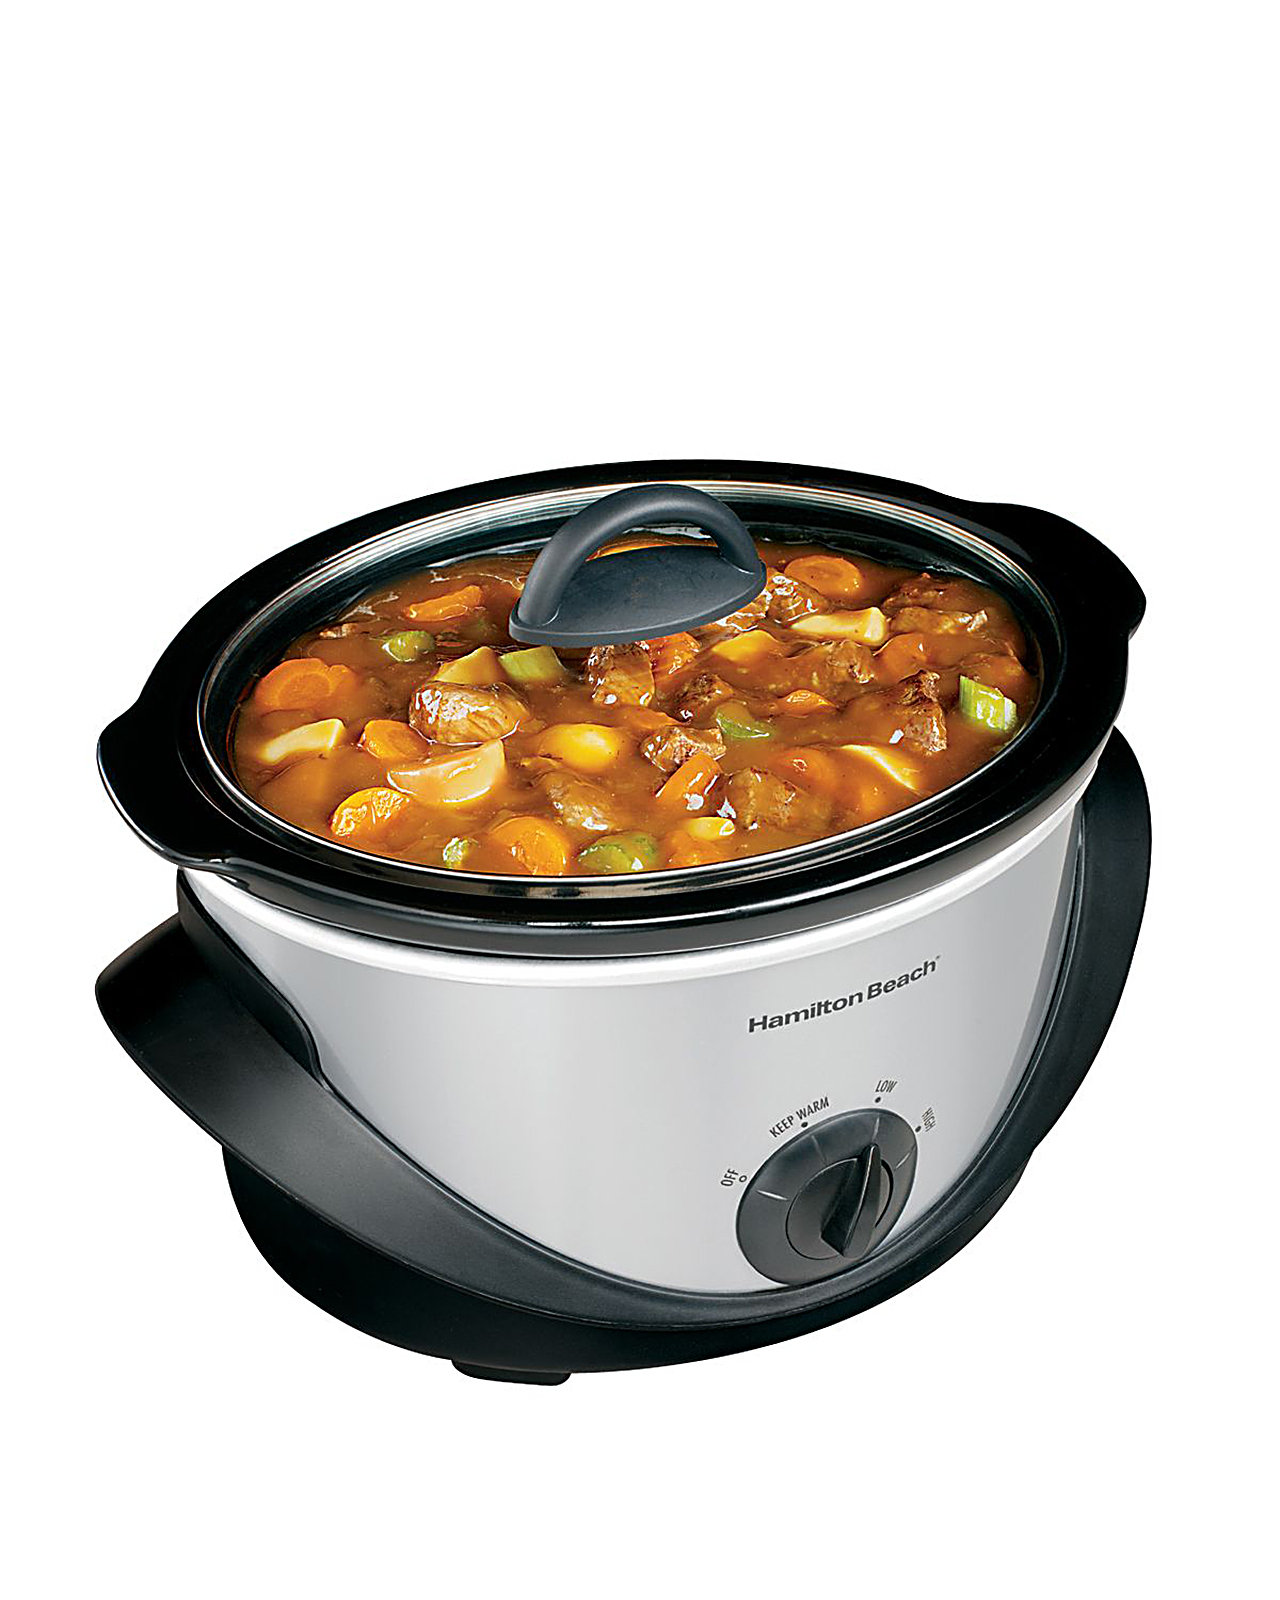 4 Quart Oval Slow Cooker                                                                                                         at mygofer.com